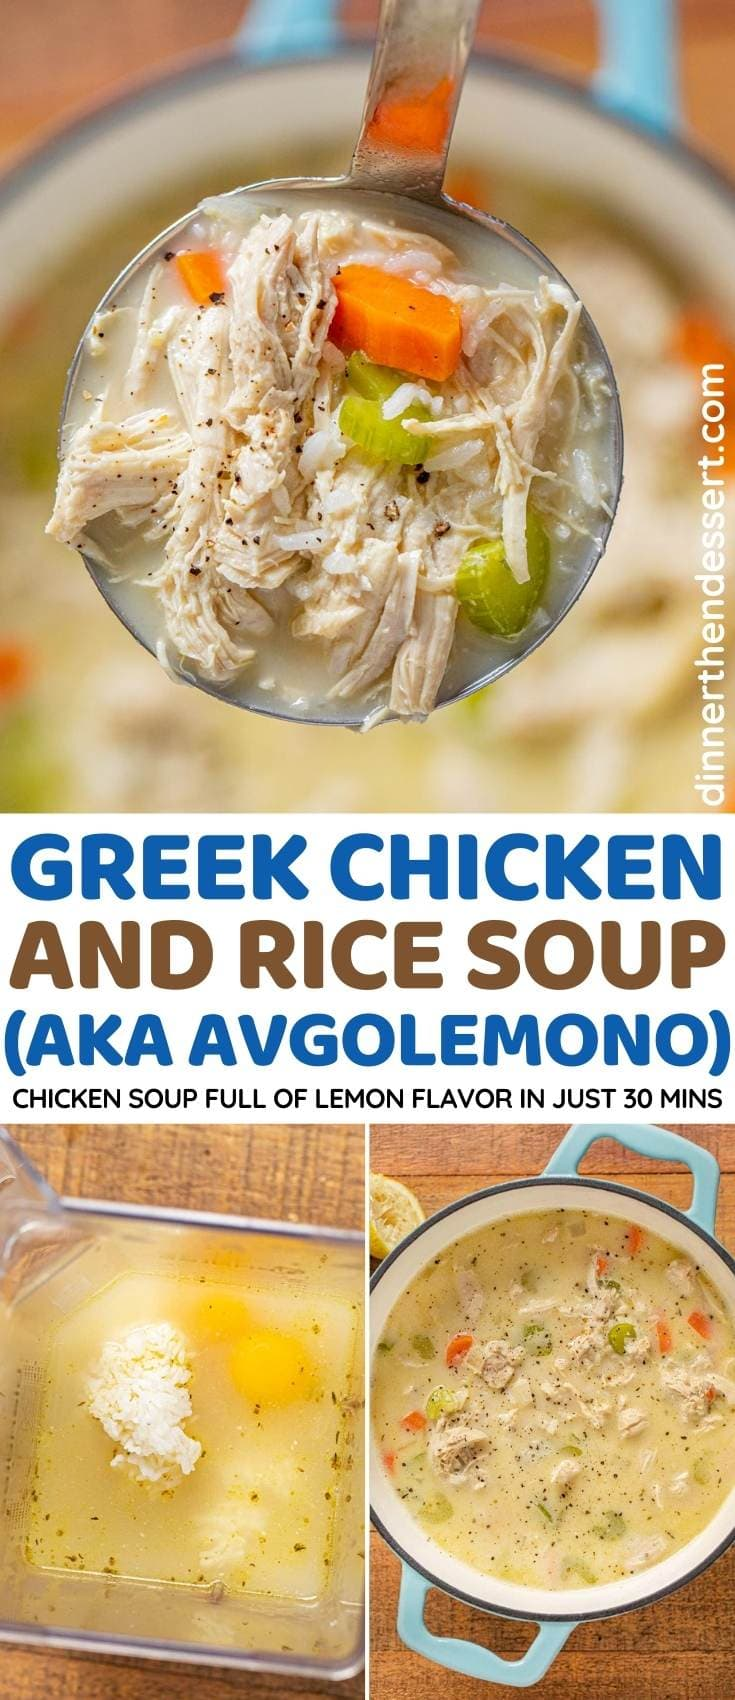 Greek Chicken and Rice Soup (Avgolemono) collage